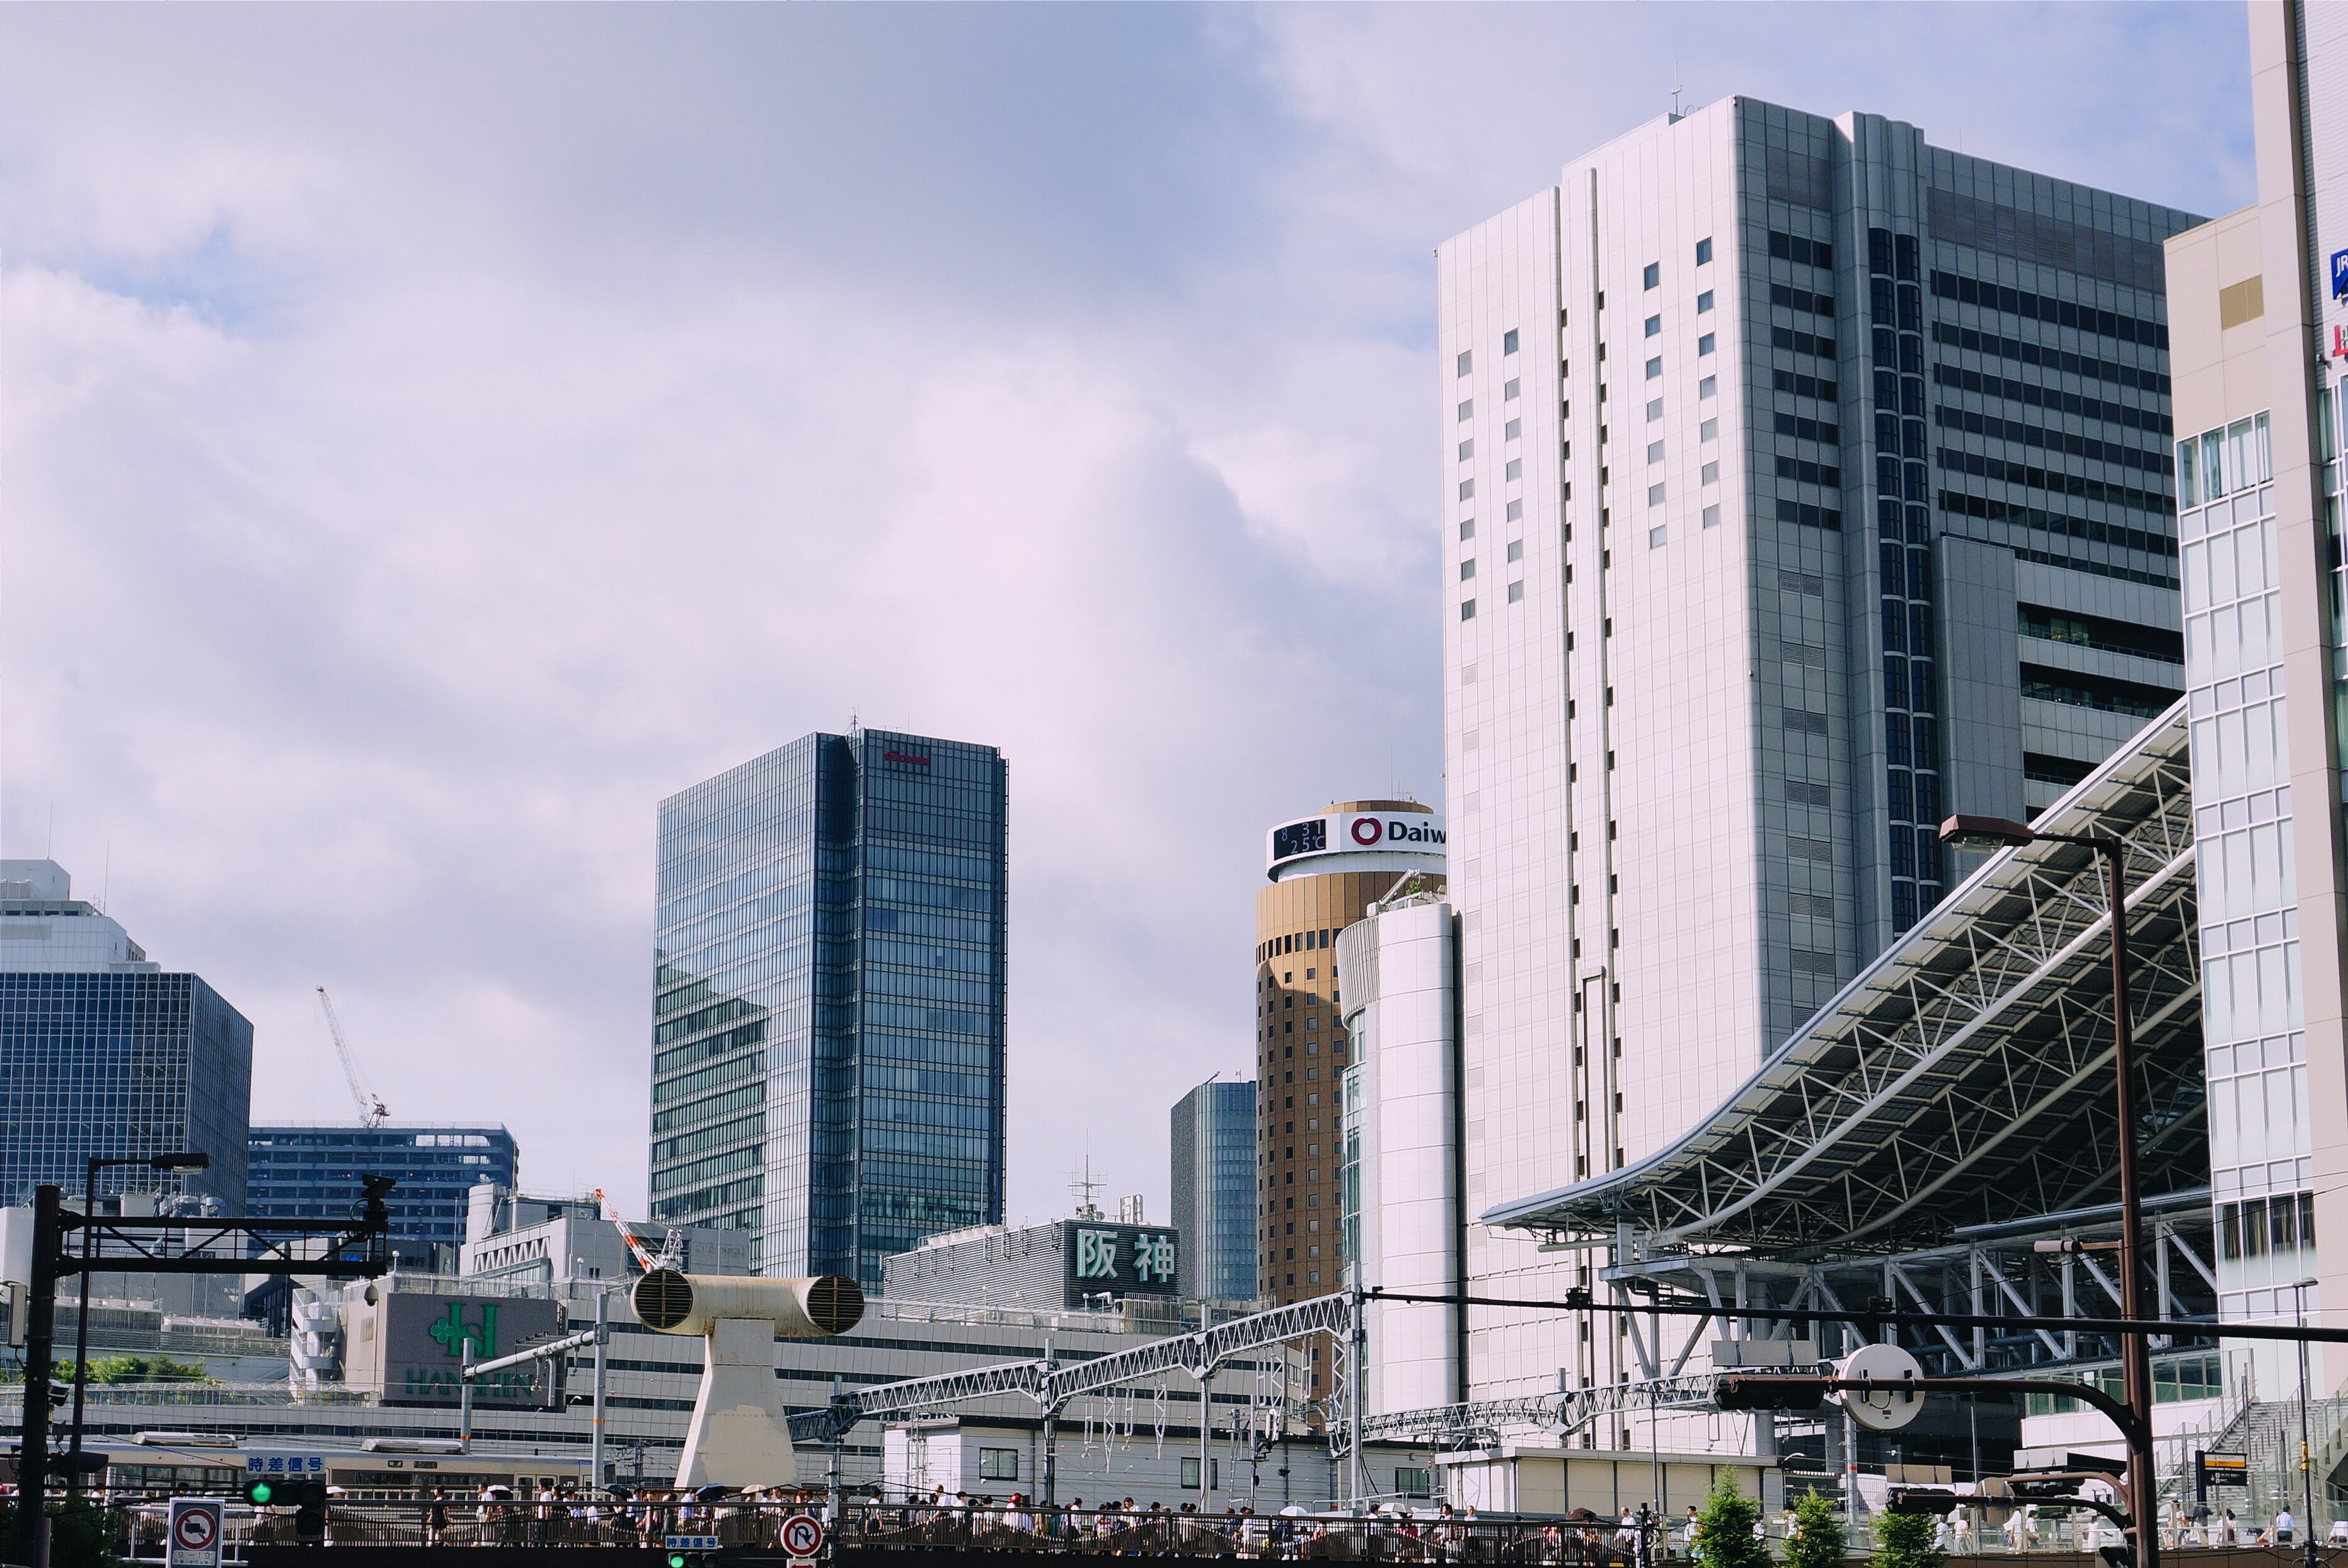 An office district with a modern exterior of offices and architectural designs depicting a modern cityscape